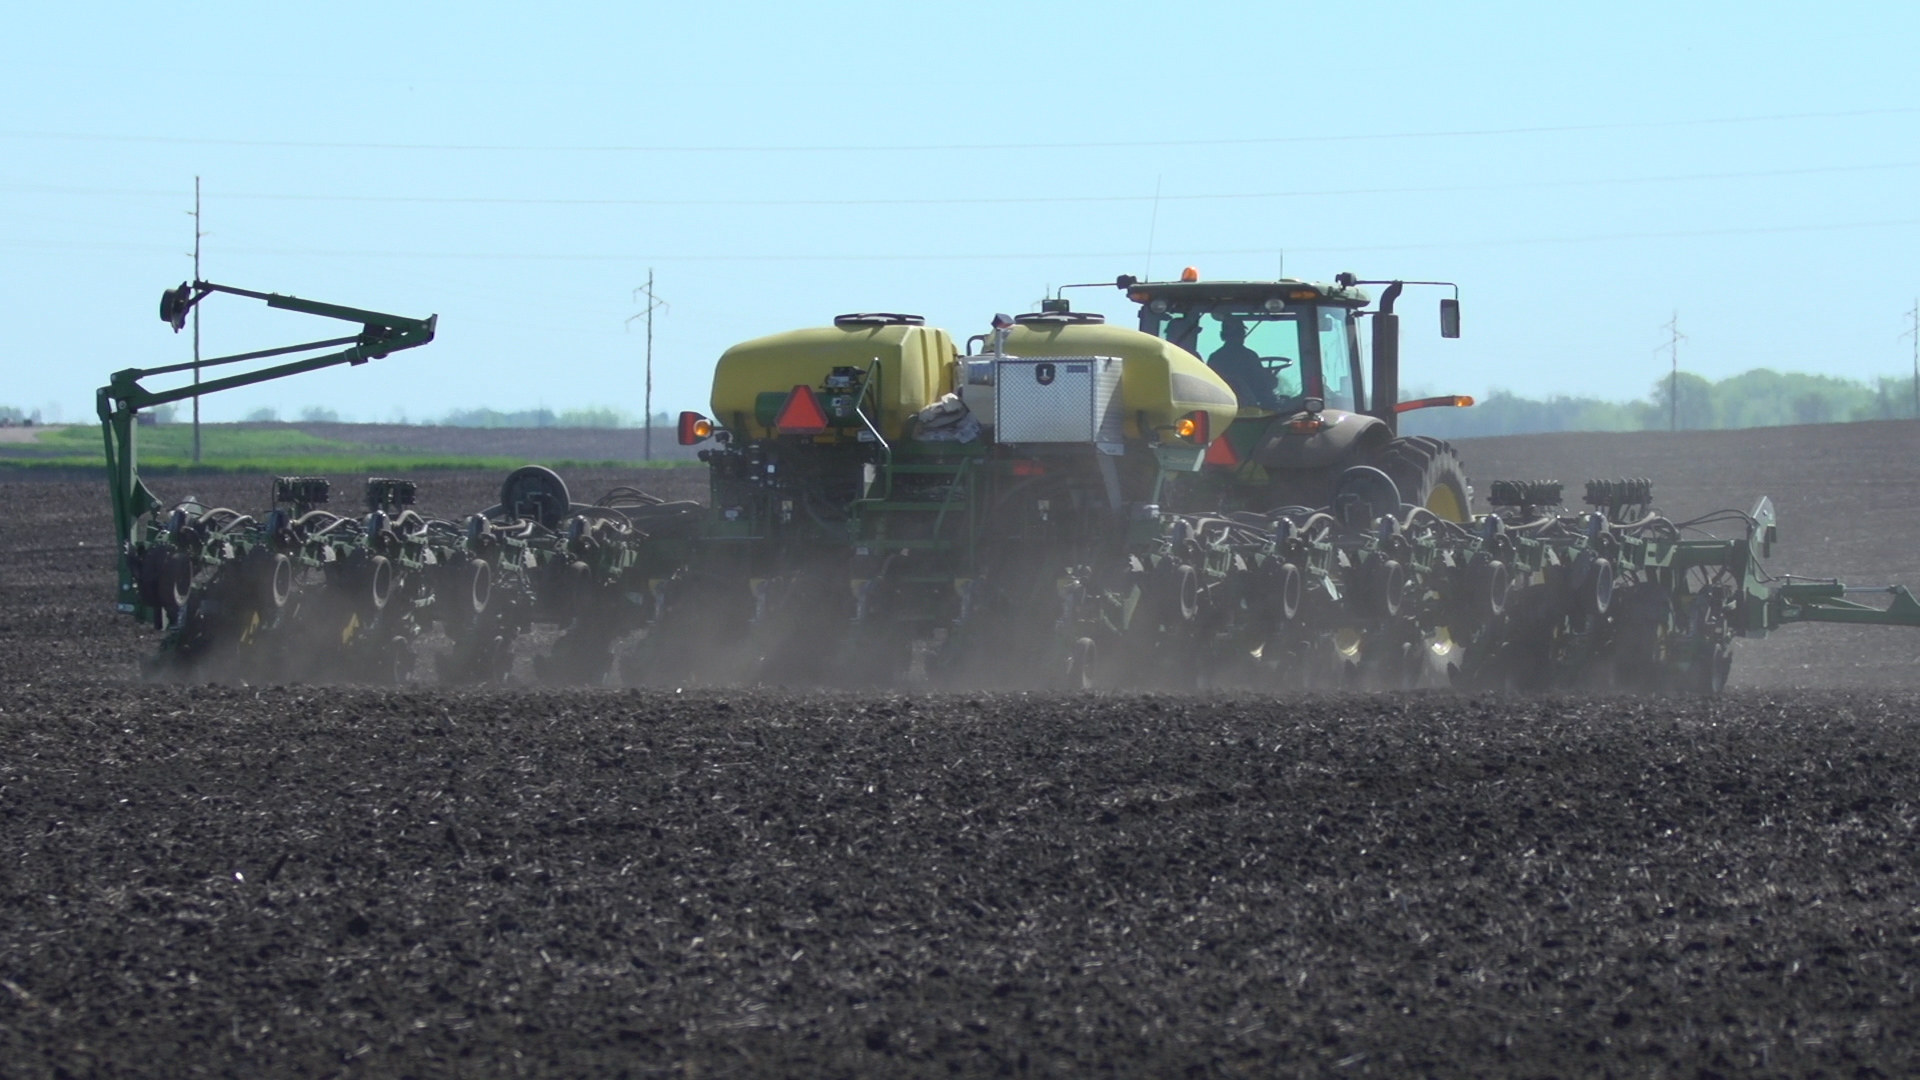 This agronomic image shows a seed planter